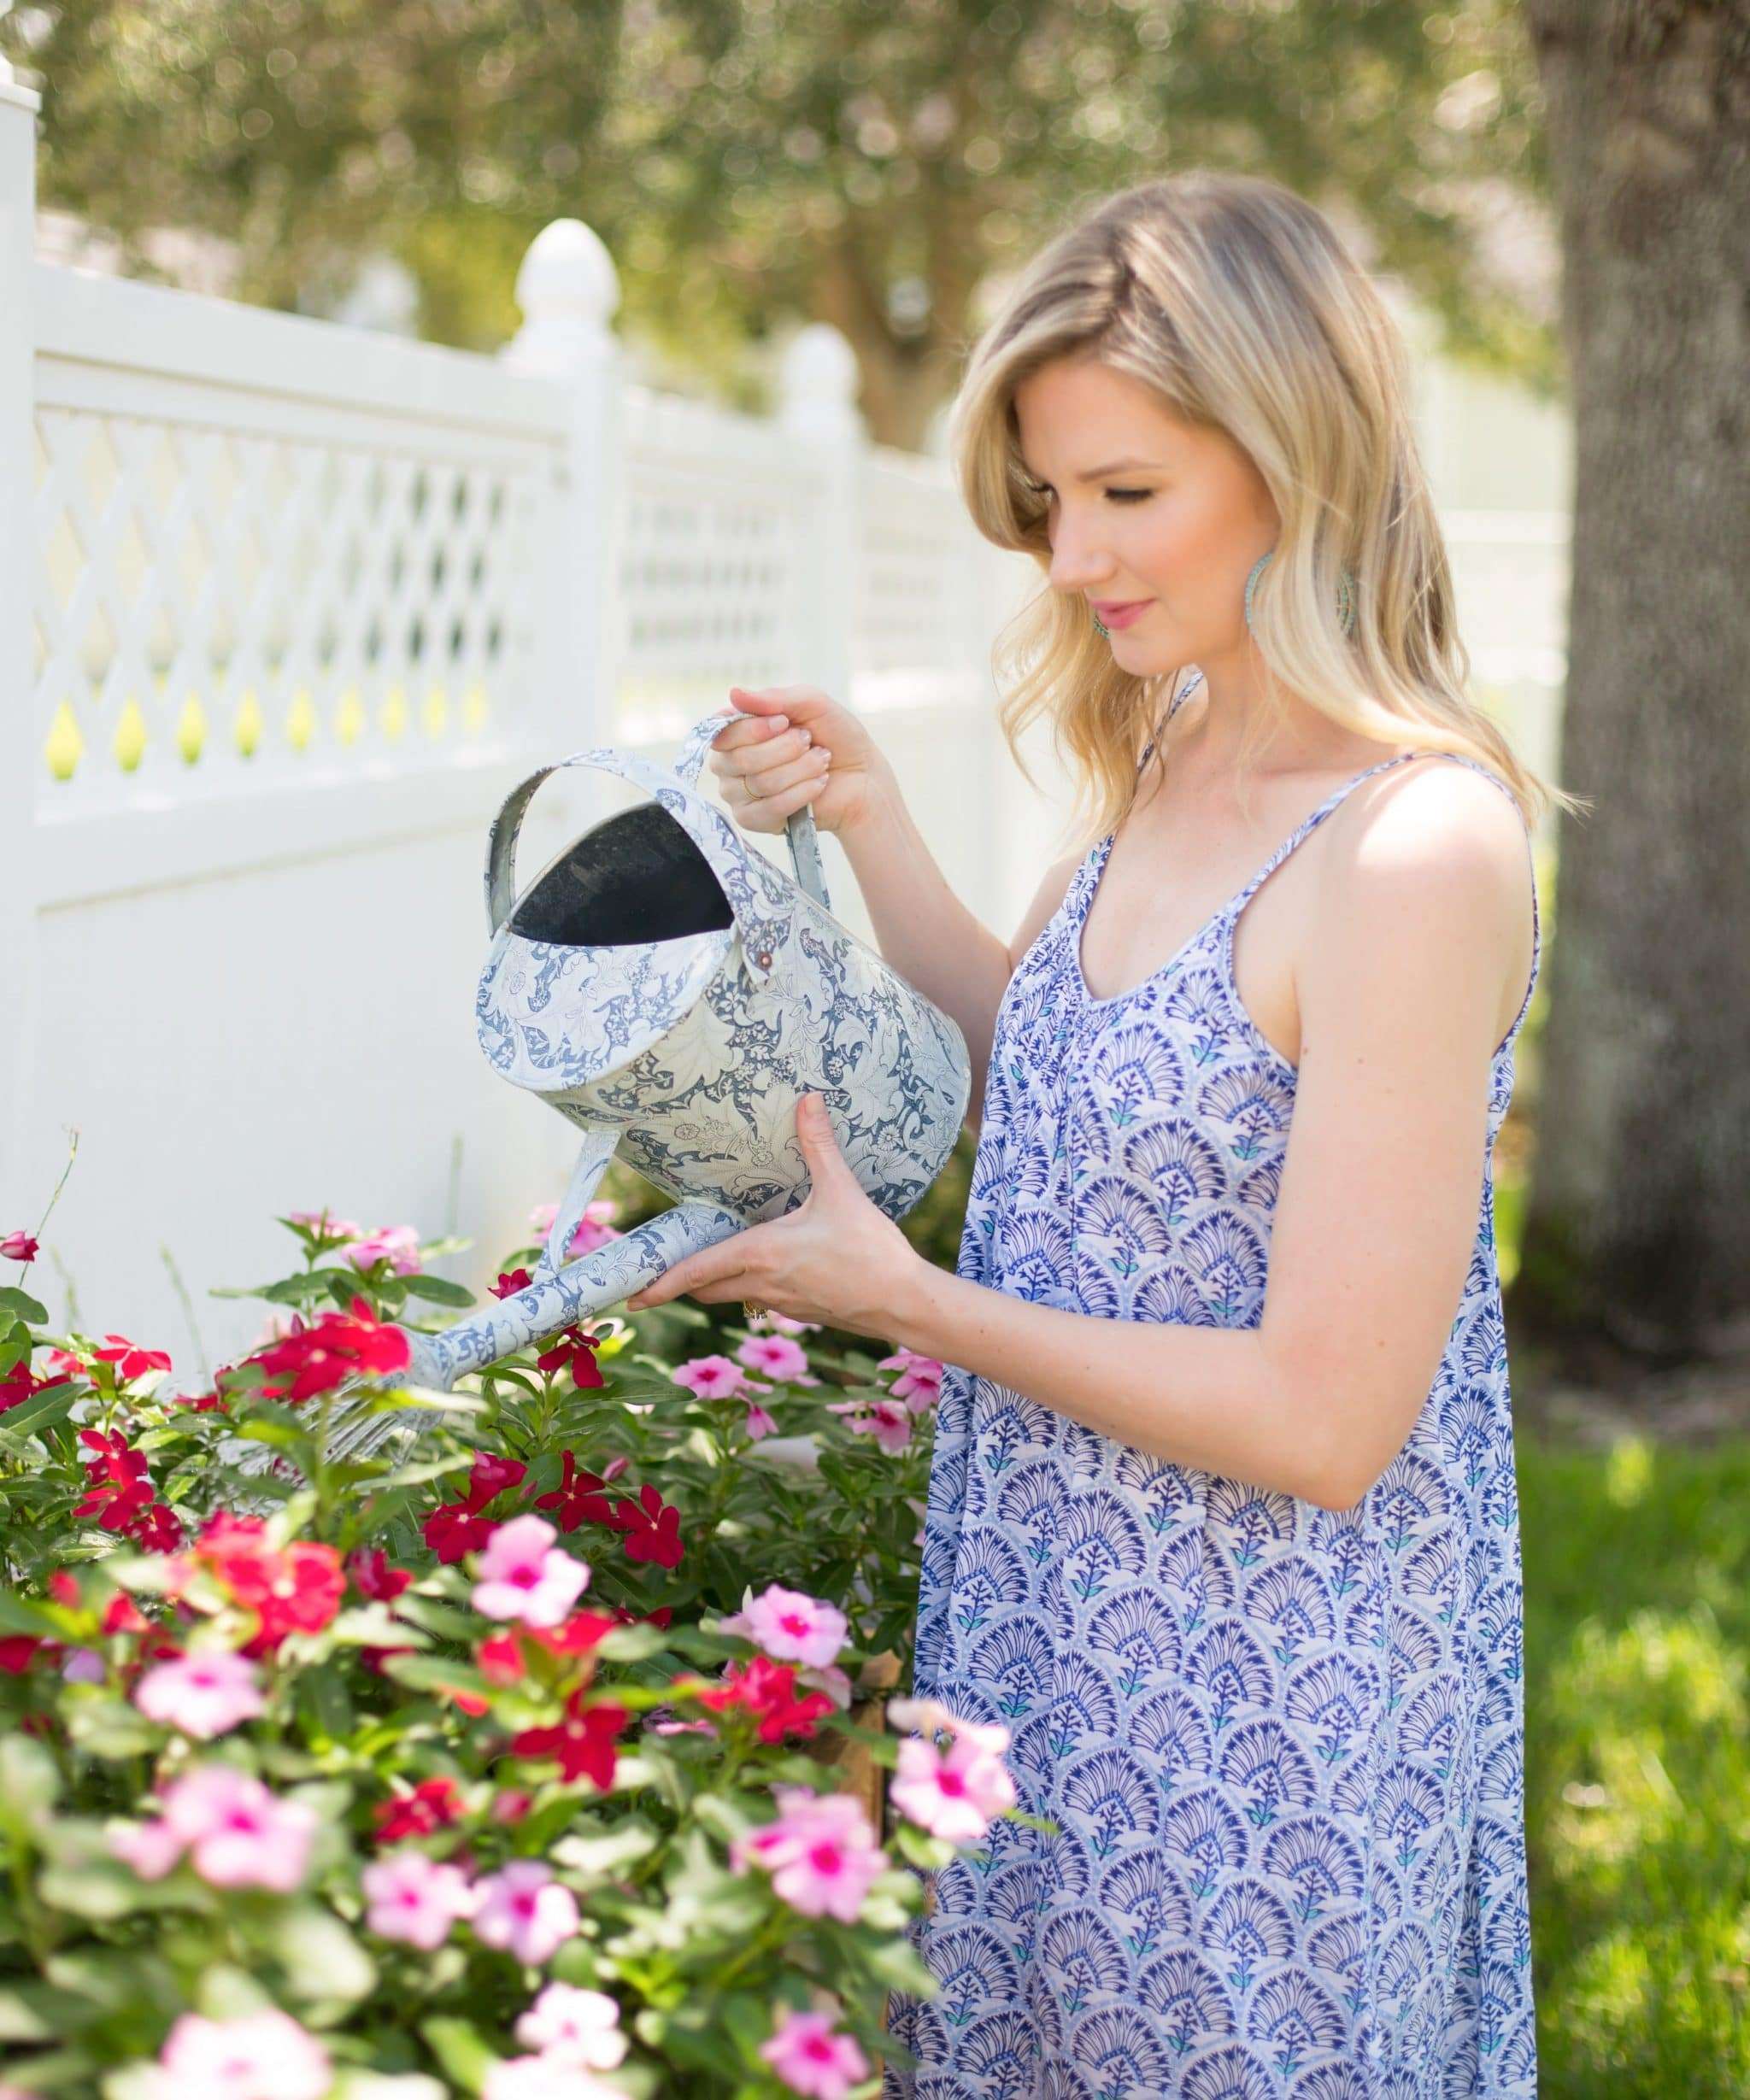 What to wear under tops, skirts, dresses, and shorts? Blogger Ashley Brooke spills her secrets!   www.ashleybrookedesigns.com